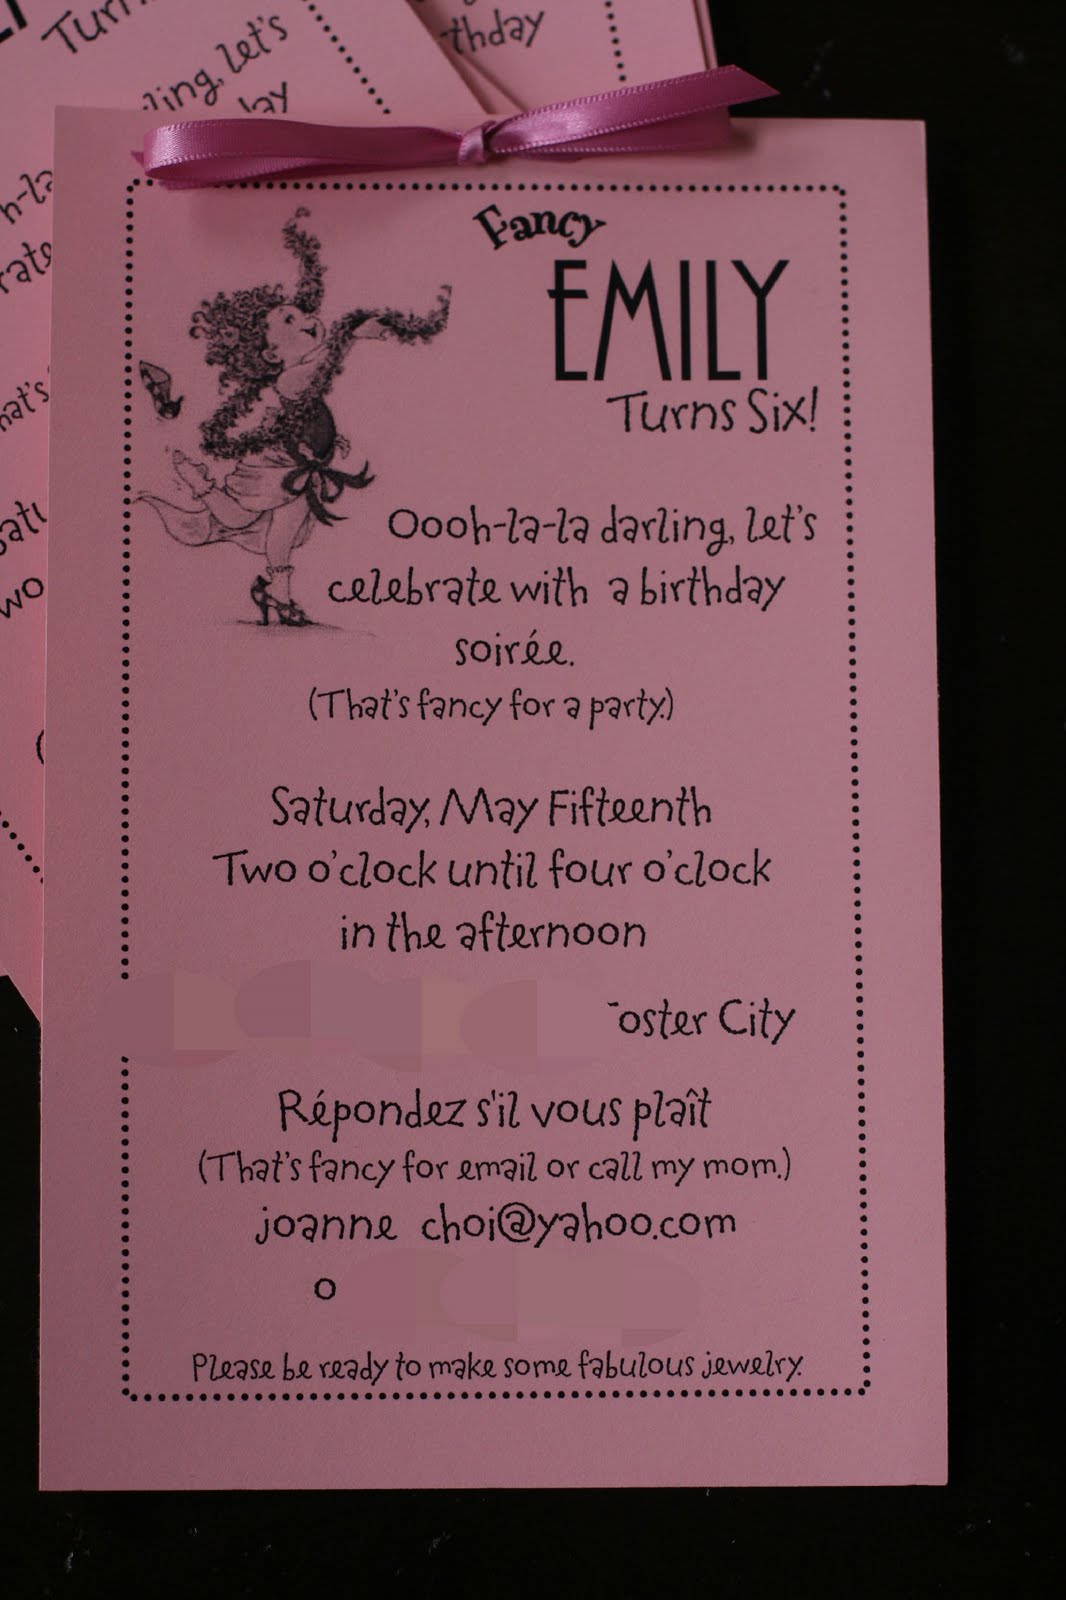 Super Fancy Nancy 6th Birthday Party: Menu and Party Planning Ideas  TD09